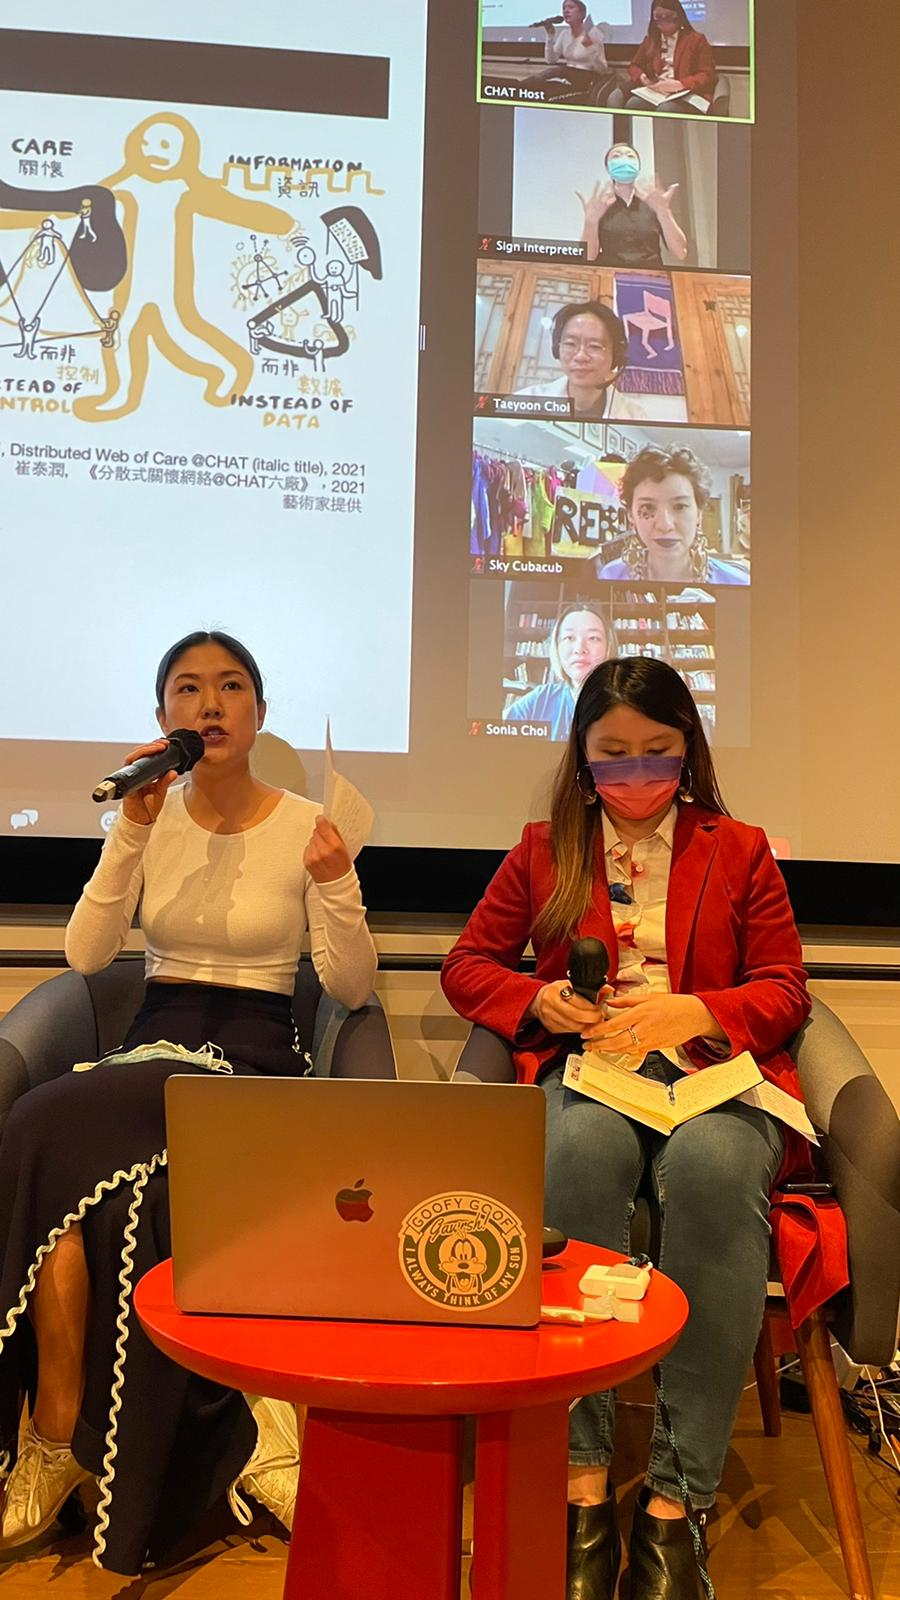 Photo from the Intro Session with Chantal Wong (Eaton HK) and Eugenia Law (CHAT). In the background is a projection of the zoom room, which has a powerpoint and video of a sign interpreter, Taeyoon Choi, Sky Cubacub, and Suhyun Choi.